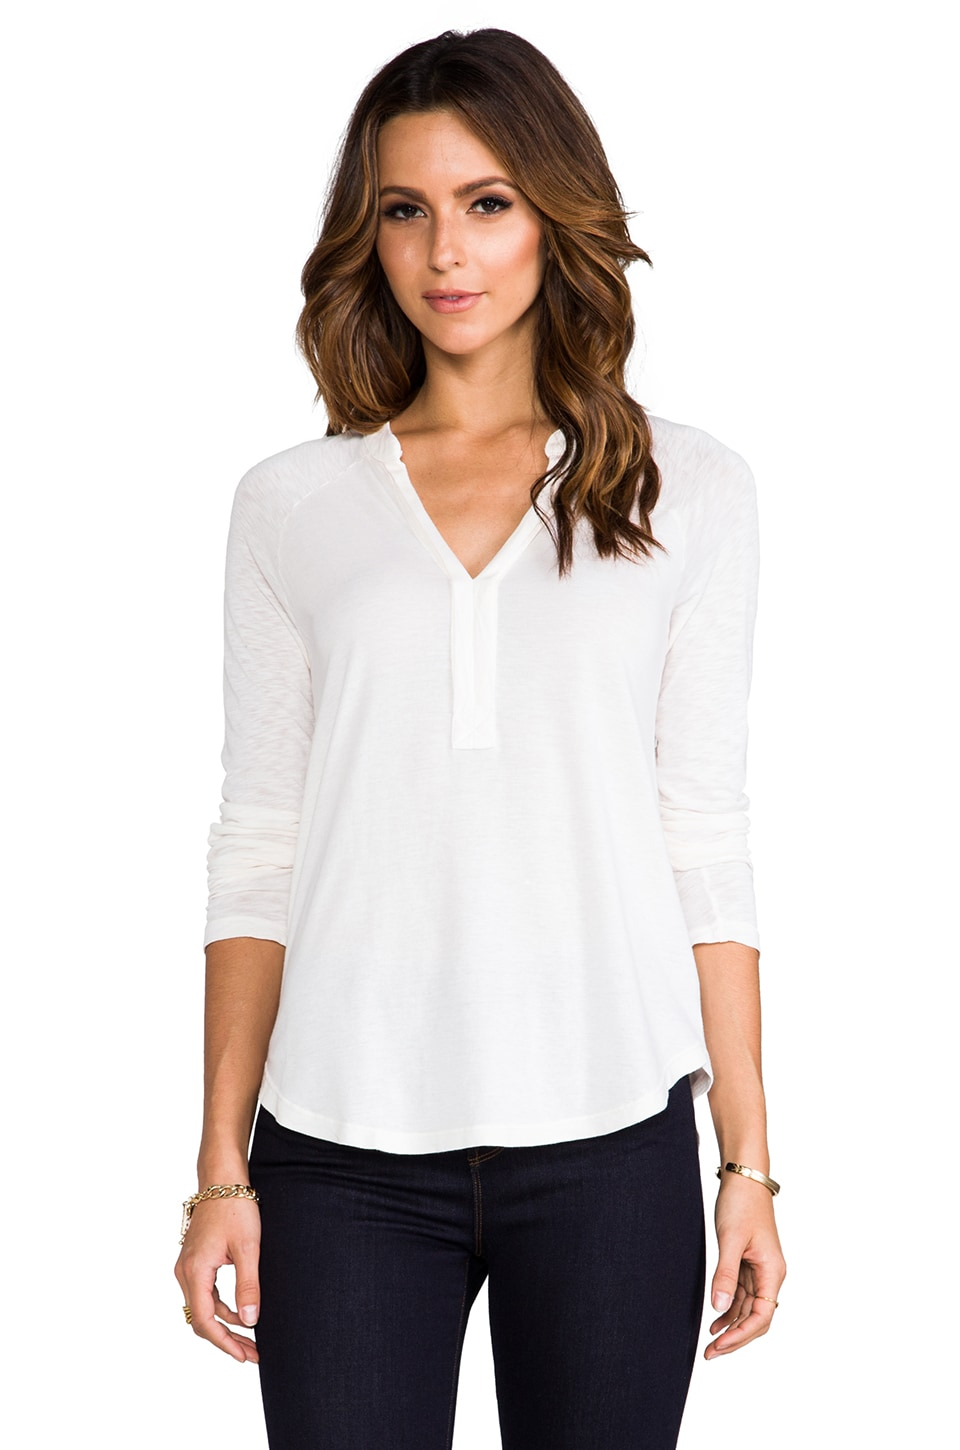 Splendid Very Light Jersey Top in Sand Dollar